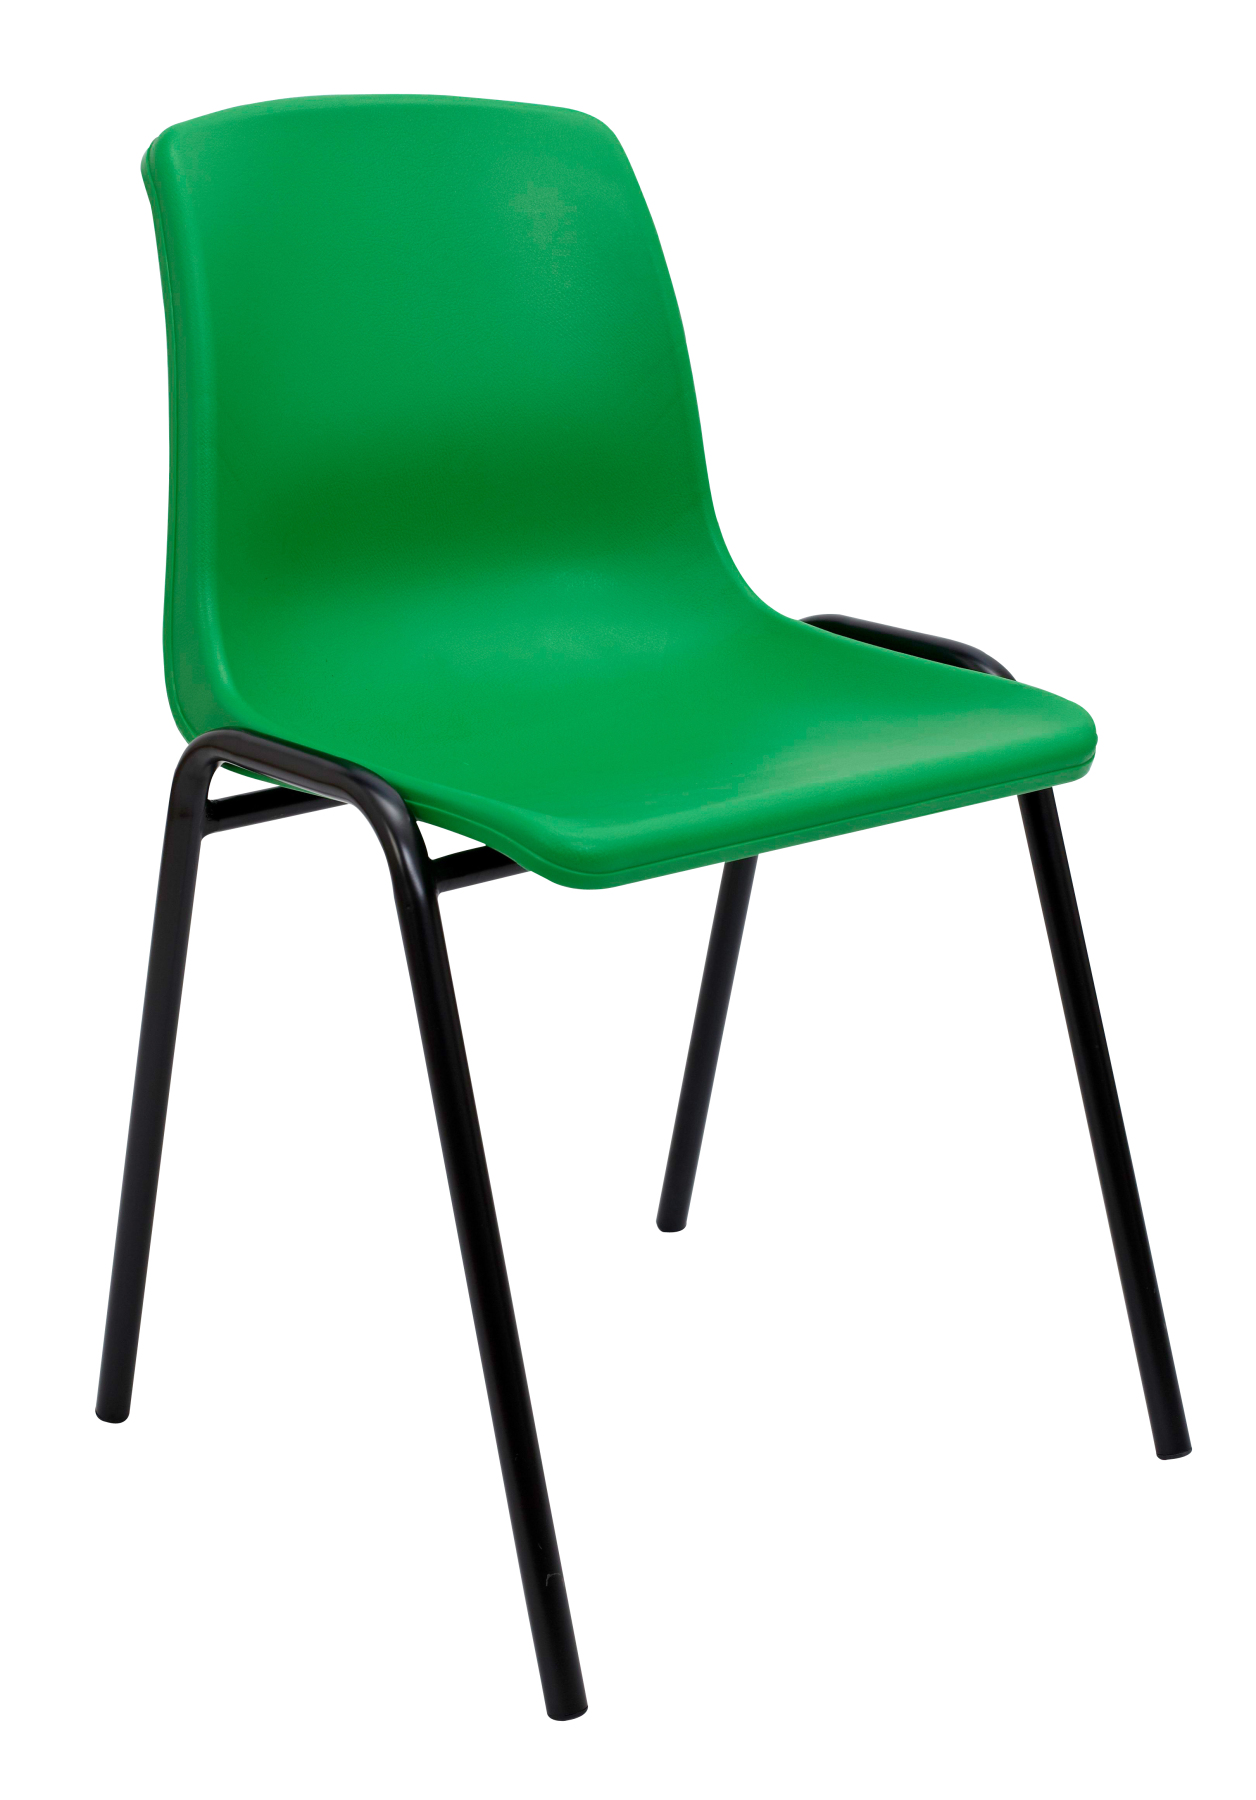 Visitor chair desk ergonomic  Stackable and with Negro up seat and backstop structure PVC green color TAPHOLE AND CRESP|Stools & Ottomans| |  - title=